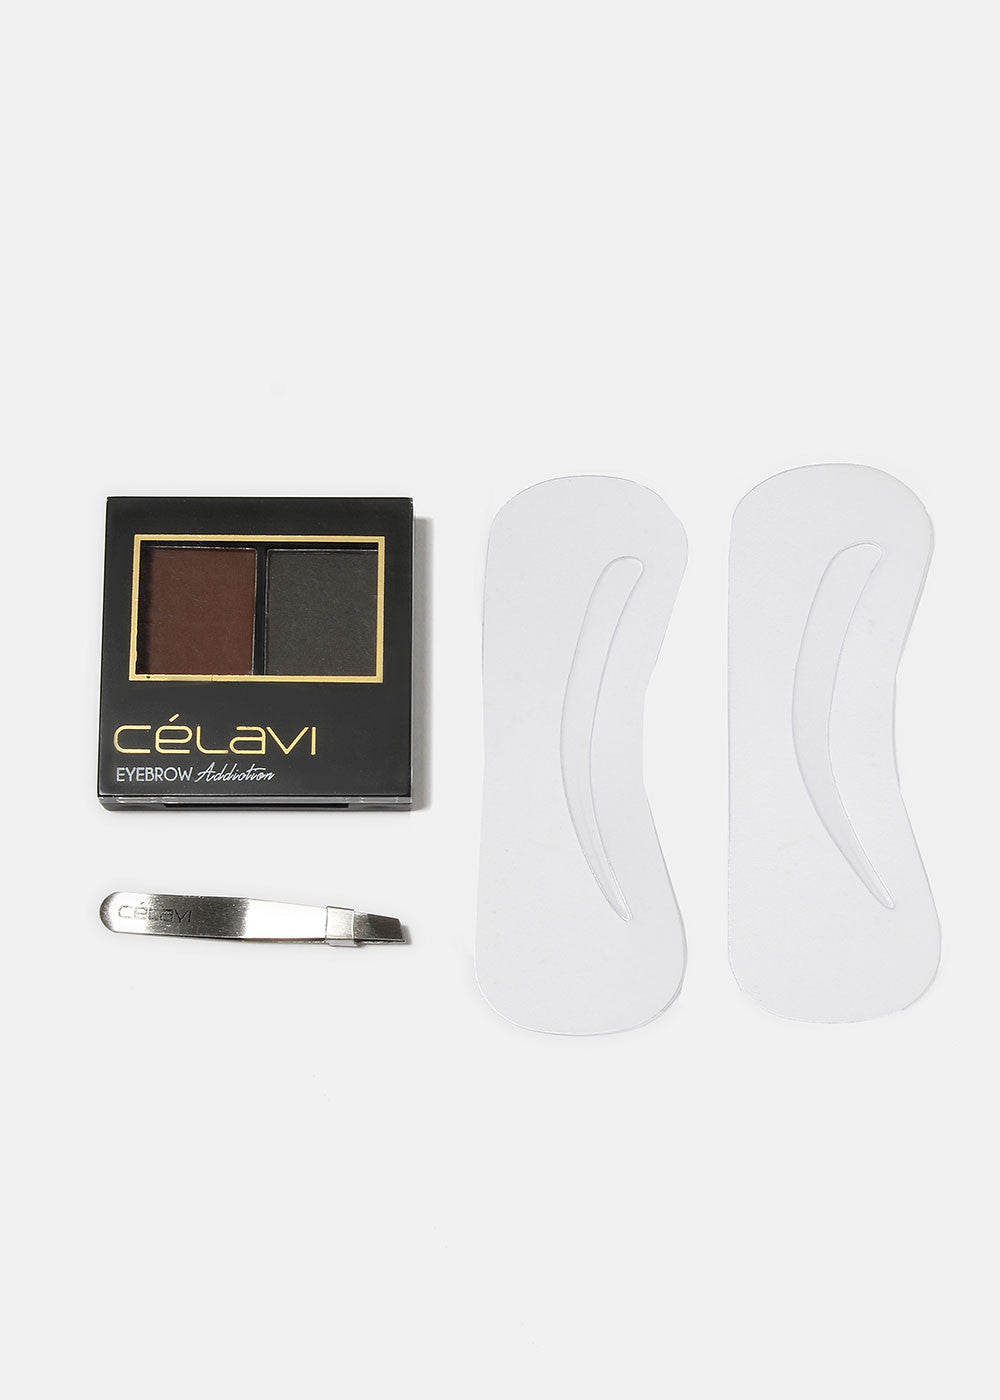 CELAVI Eyebrow Addiction - 01